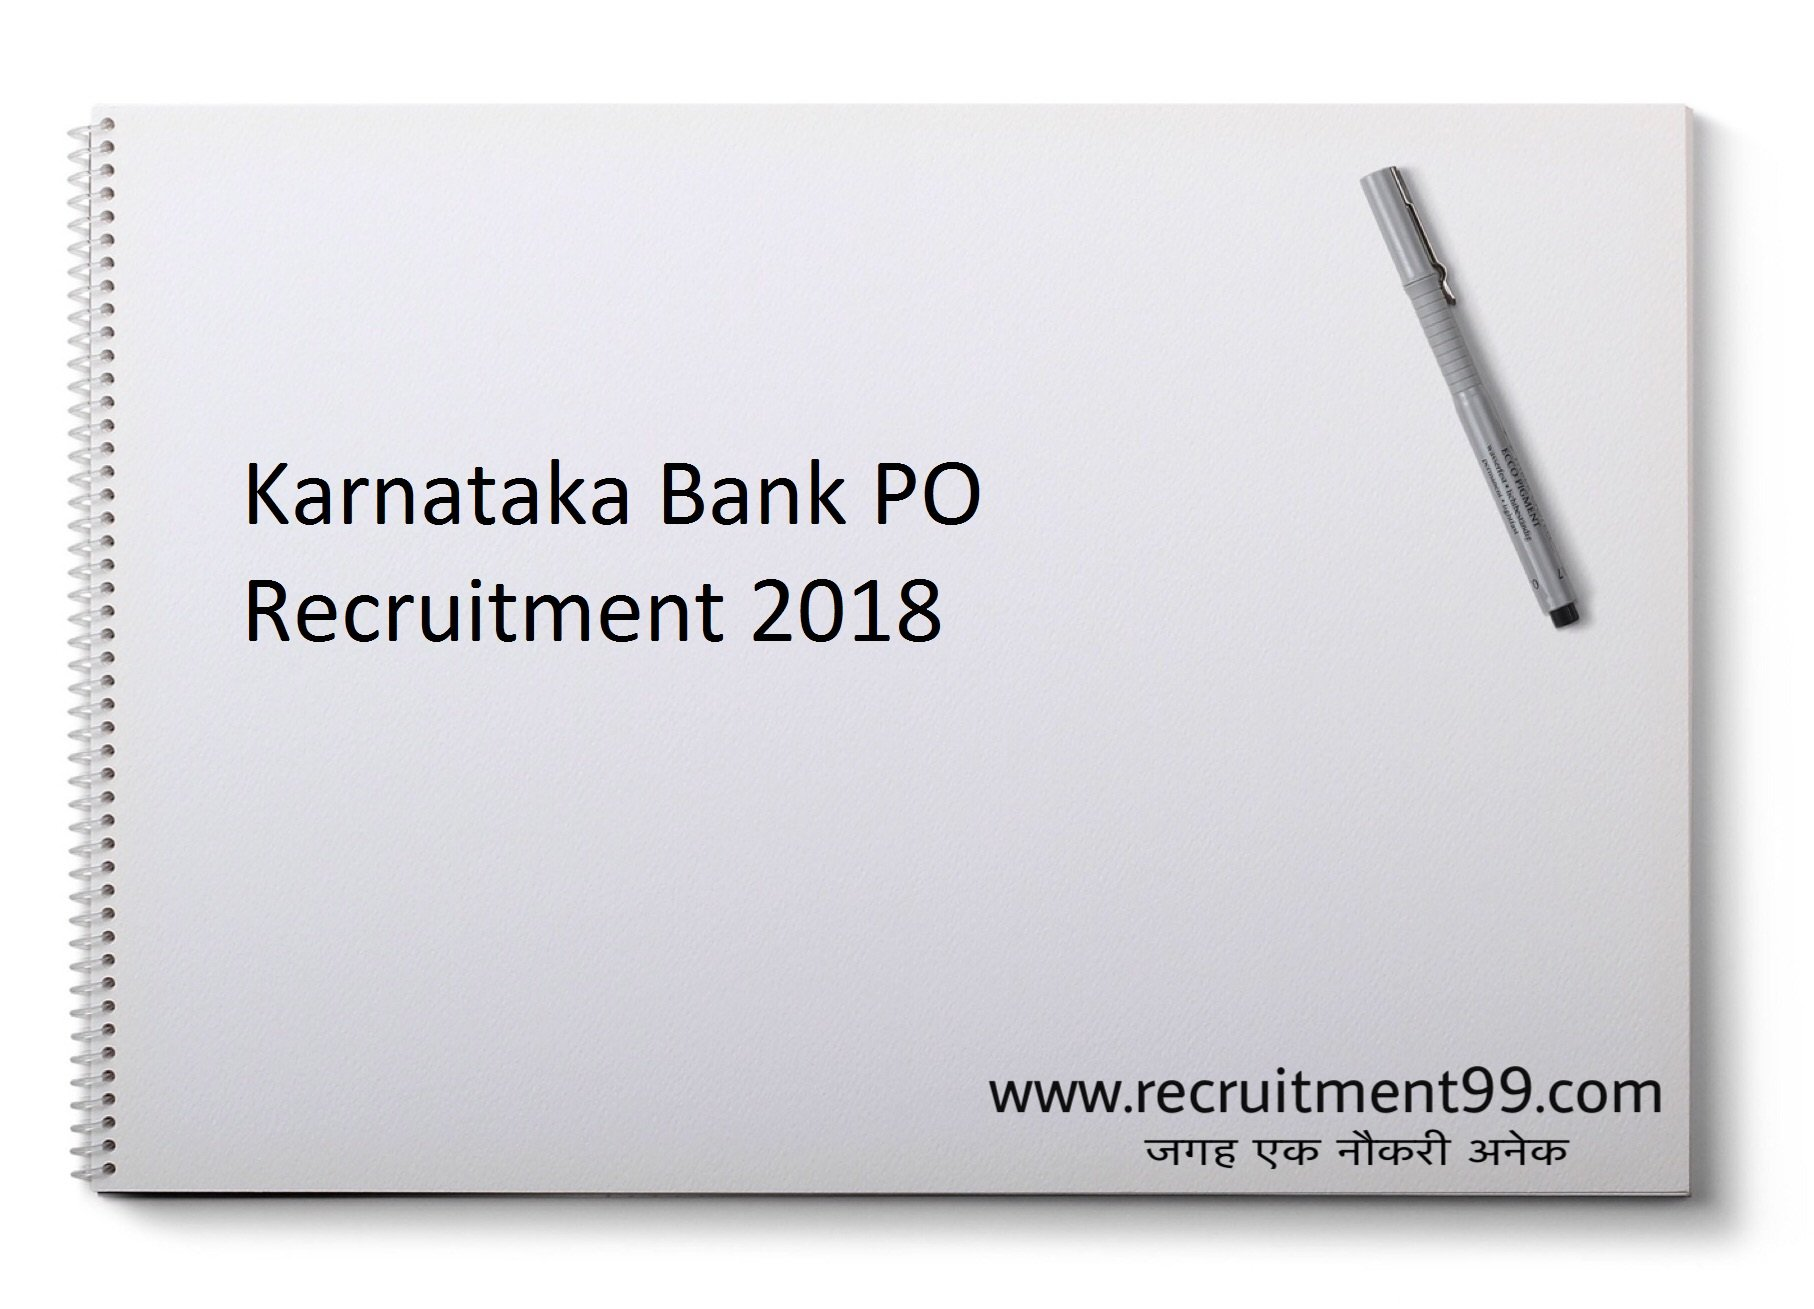 Karnataka Bank PO Recruitment 2018 - 4 CA, RM, AFO & Law Officer Posts